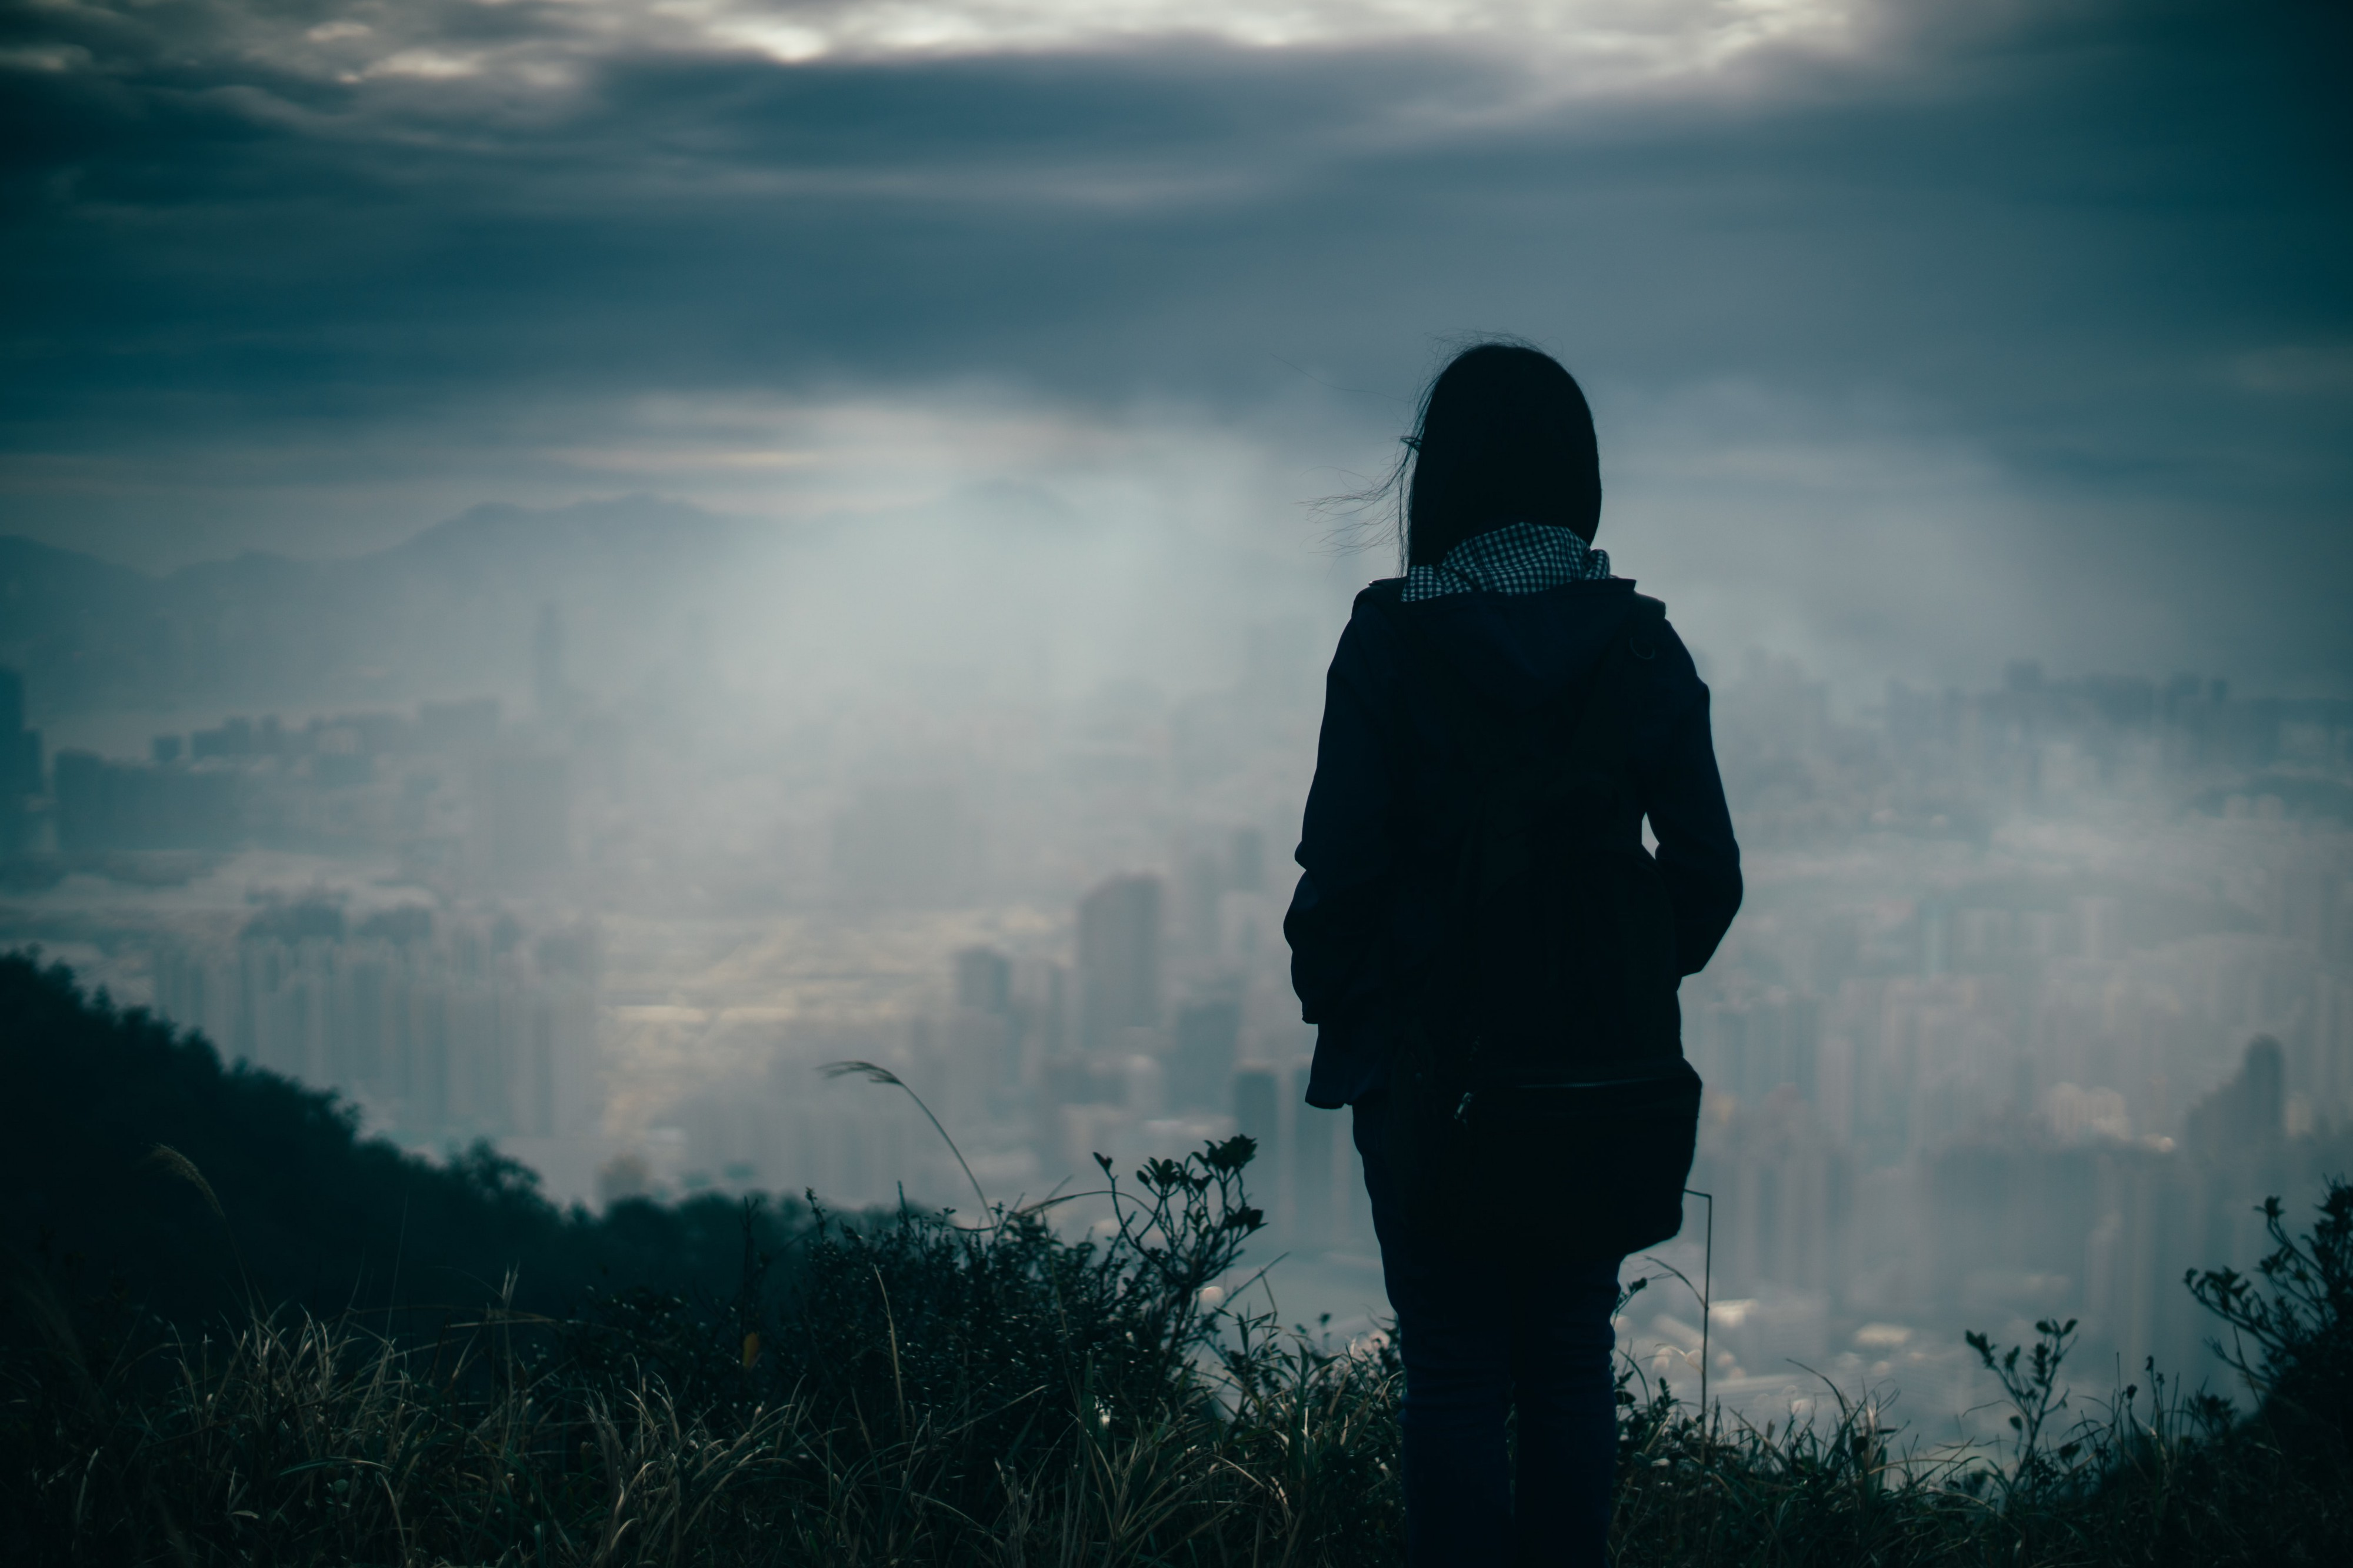 woman looking out over dark city scene with clouds in the sky